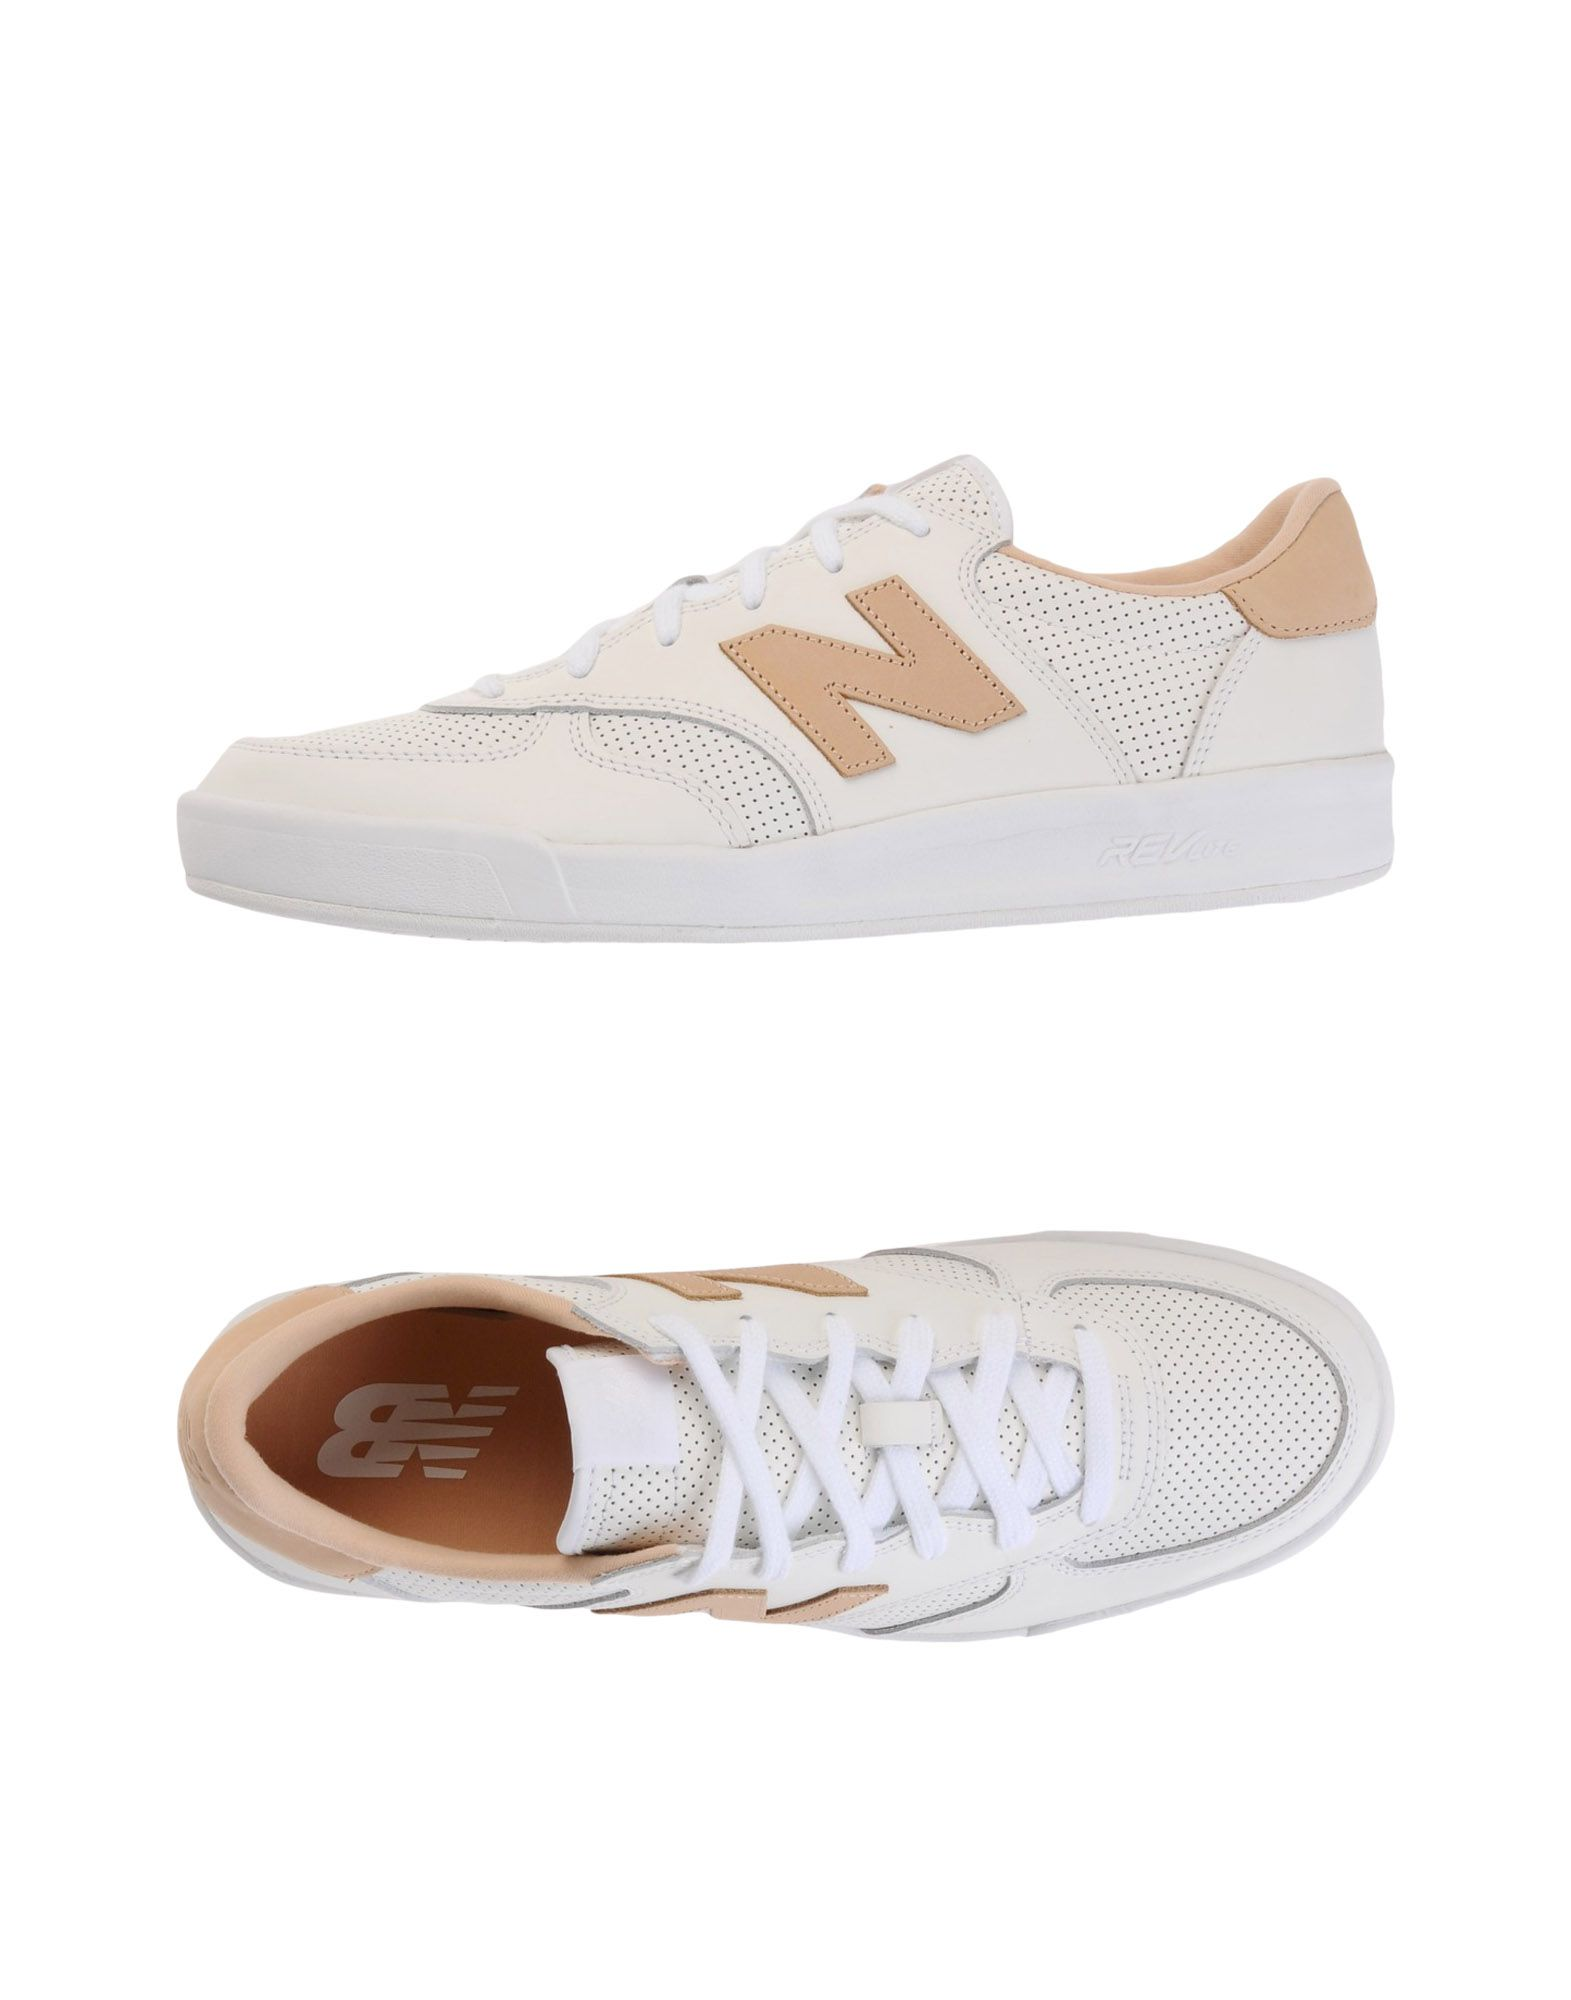 Rabatt echte Schuhe New Balance 300 Tier 2 Leather  11467050MX